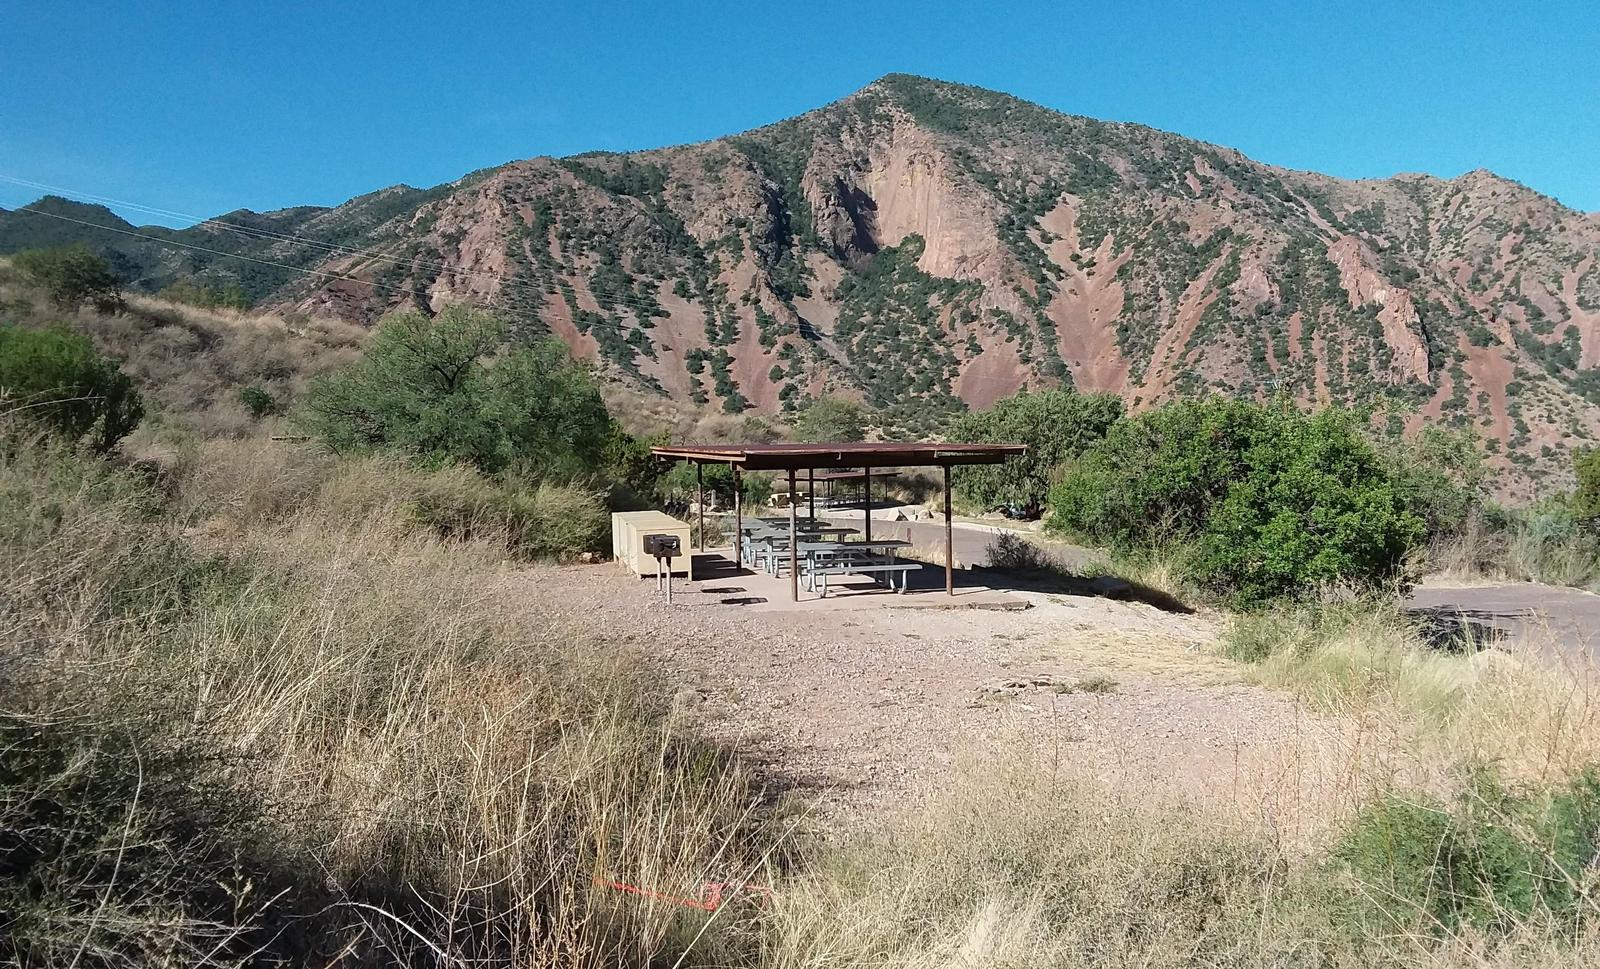 Shade structure and gathering area amidst the green and brown mountainsShade structure and gathering area